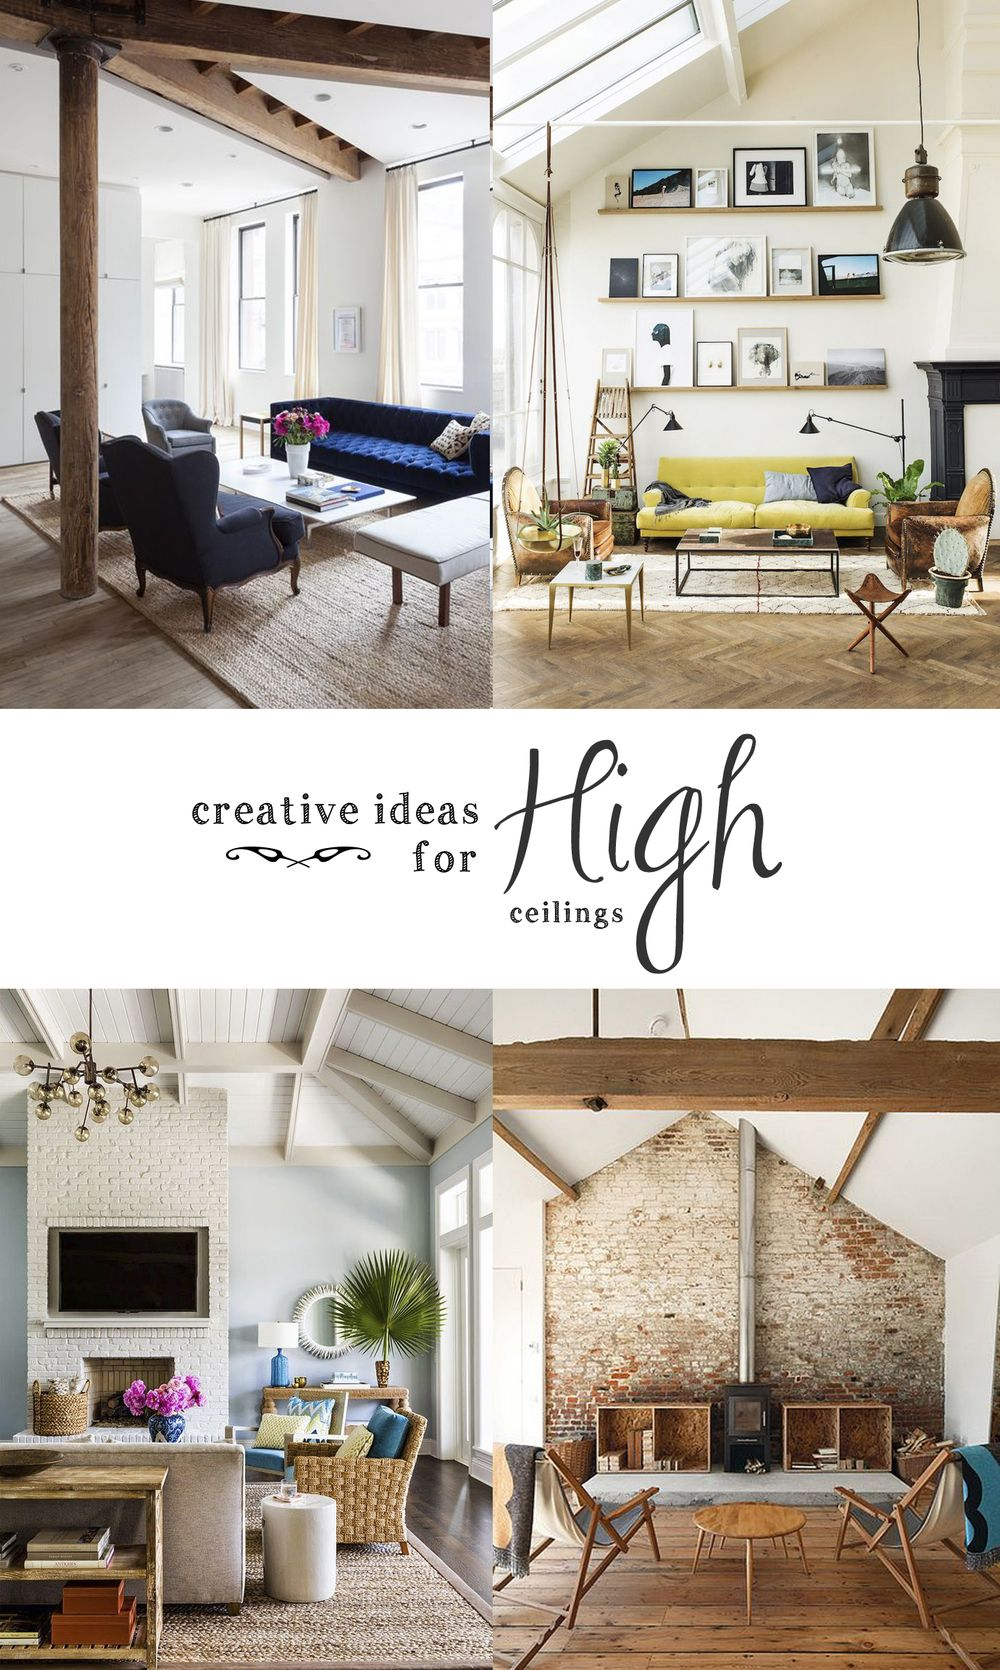 6 creative ideas for high ceilings   Ceilings, Spaces and Foyers